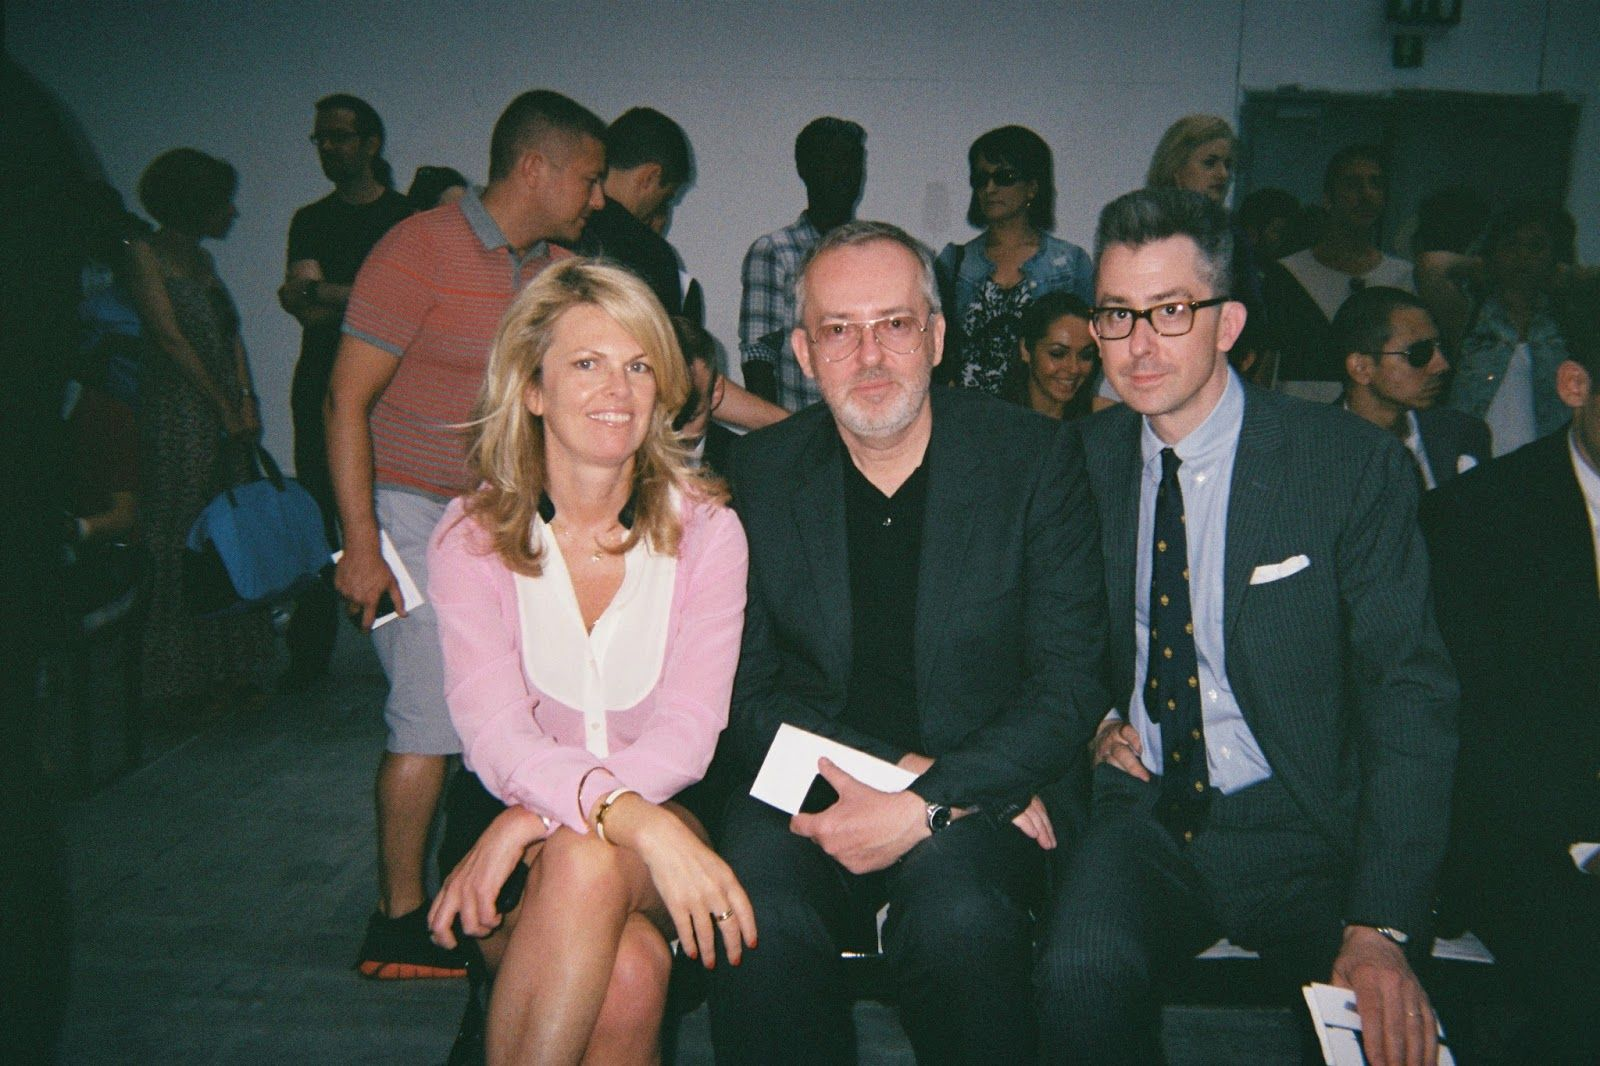 Team GQ — Madeline Weeks, Jim Moore and Michael Hainey — in Milan.